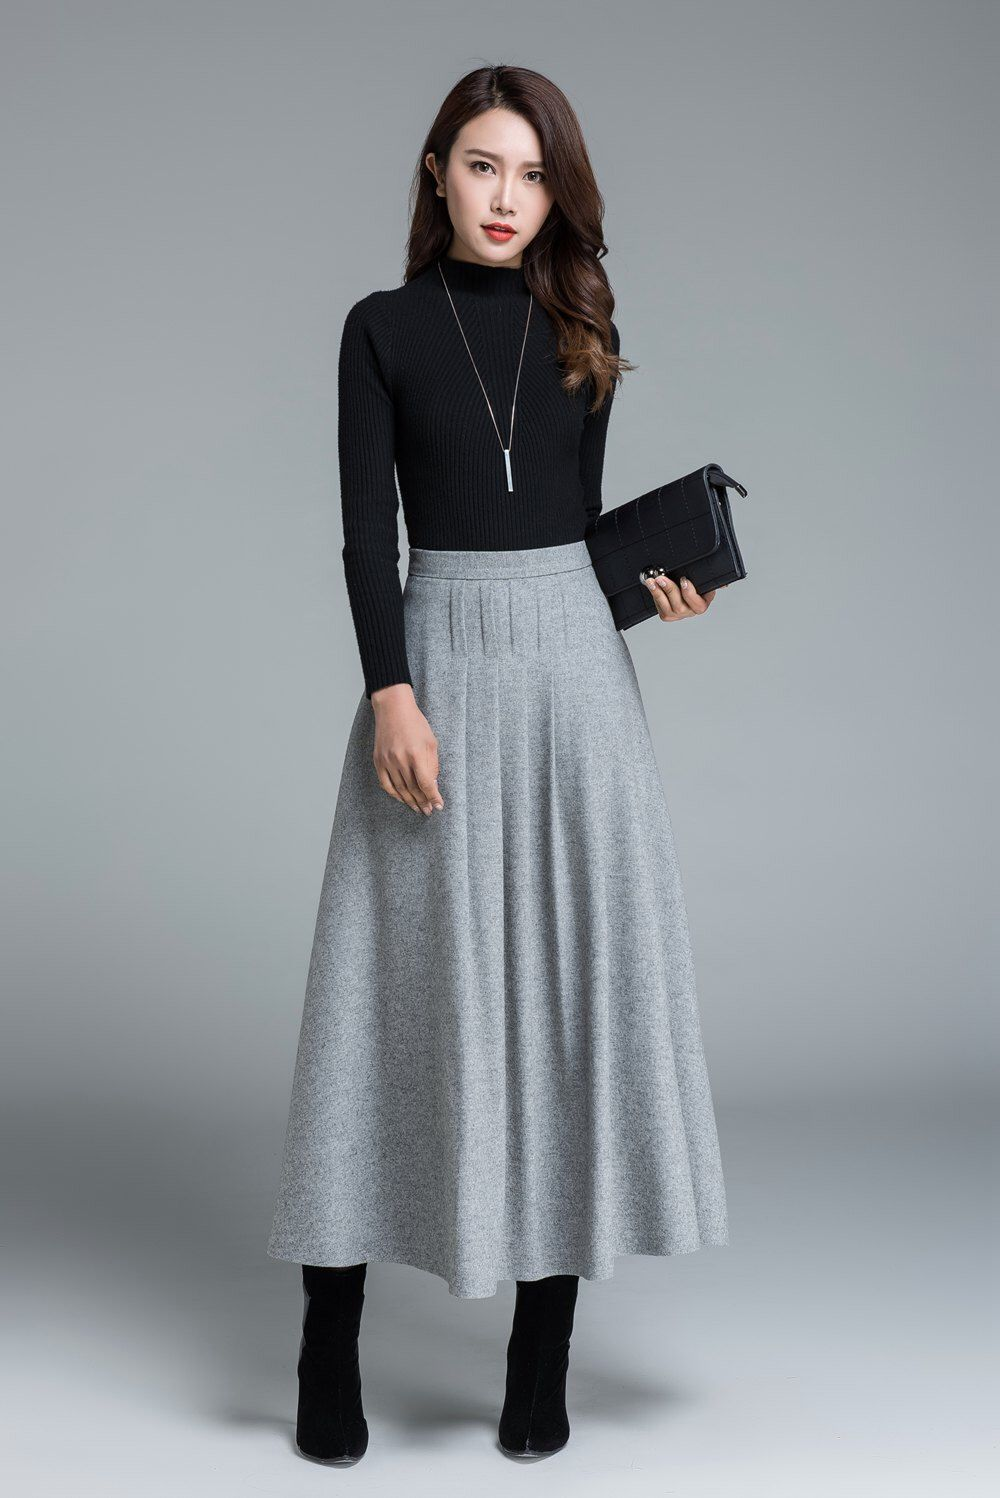 Maxi pleated skirt plus size forecasting dress for summer in 2019